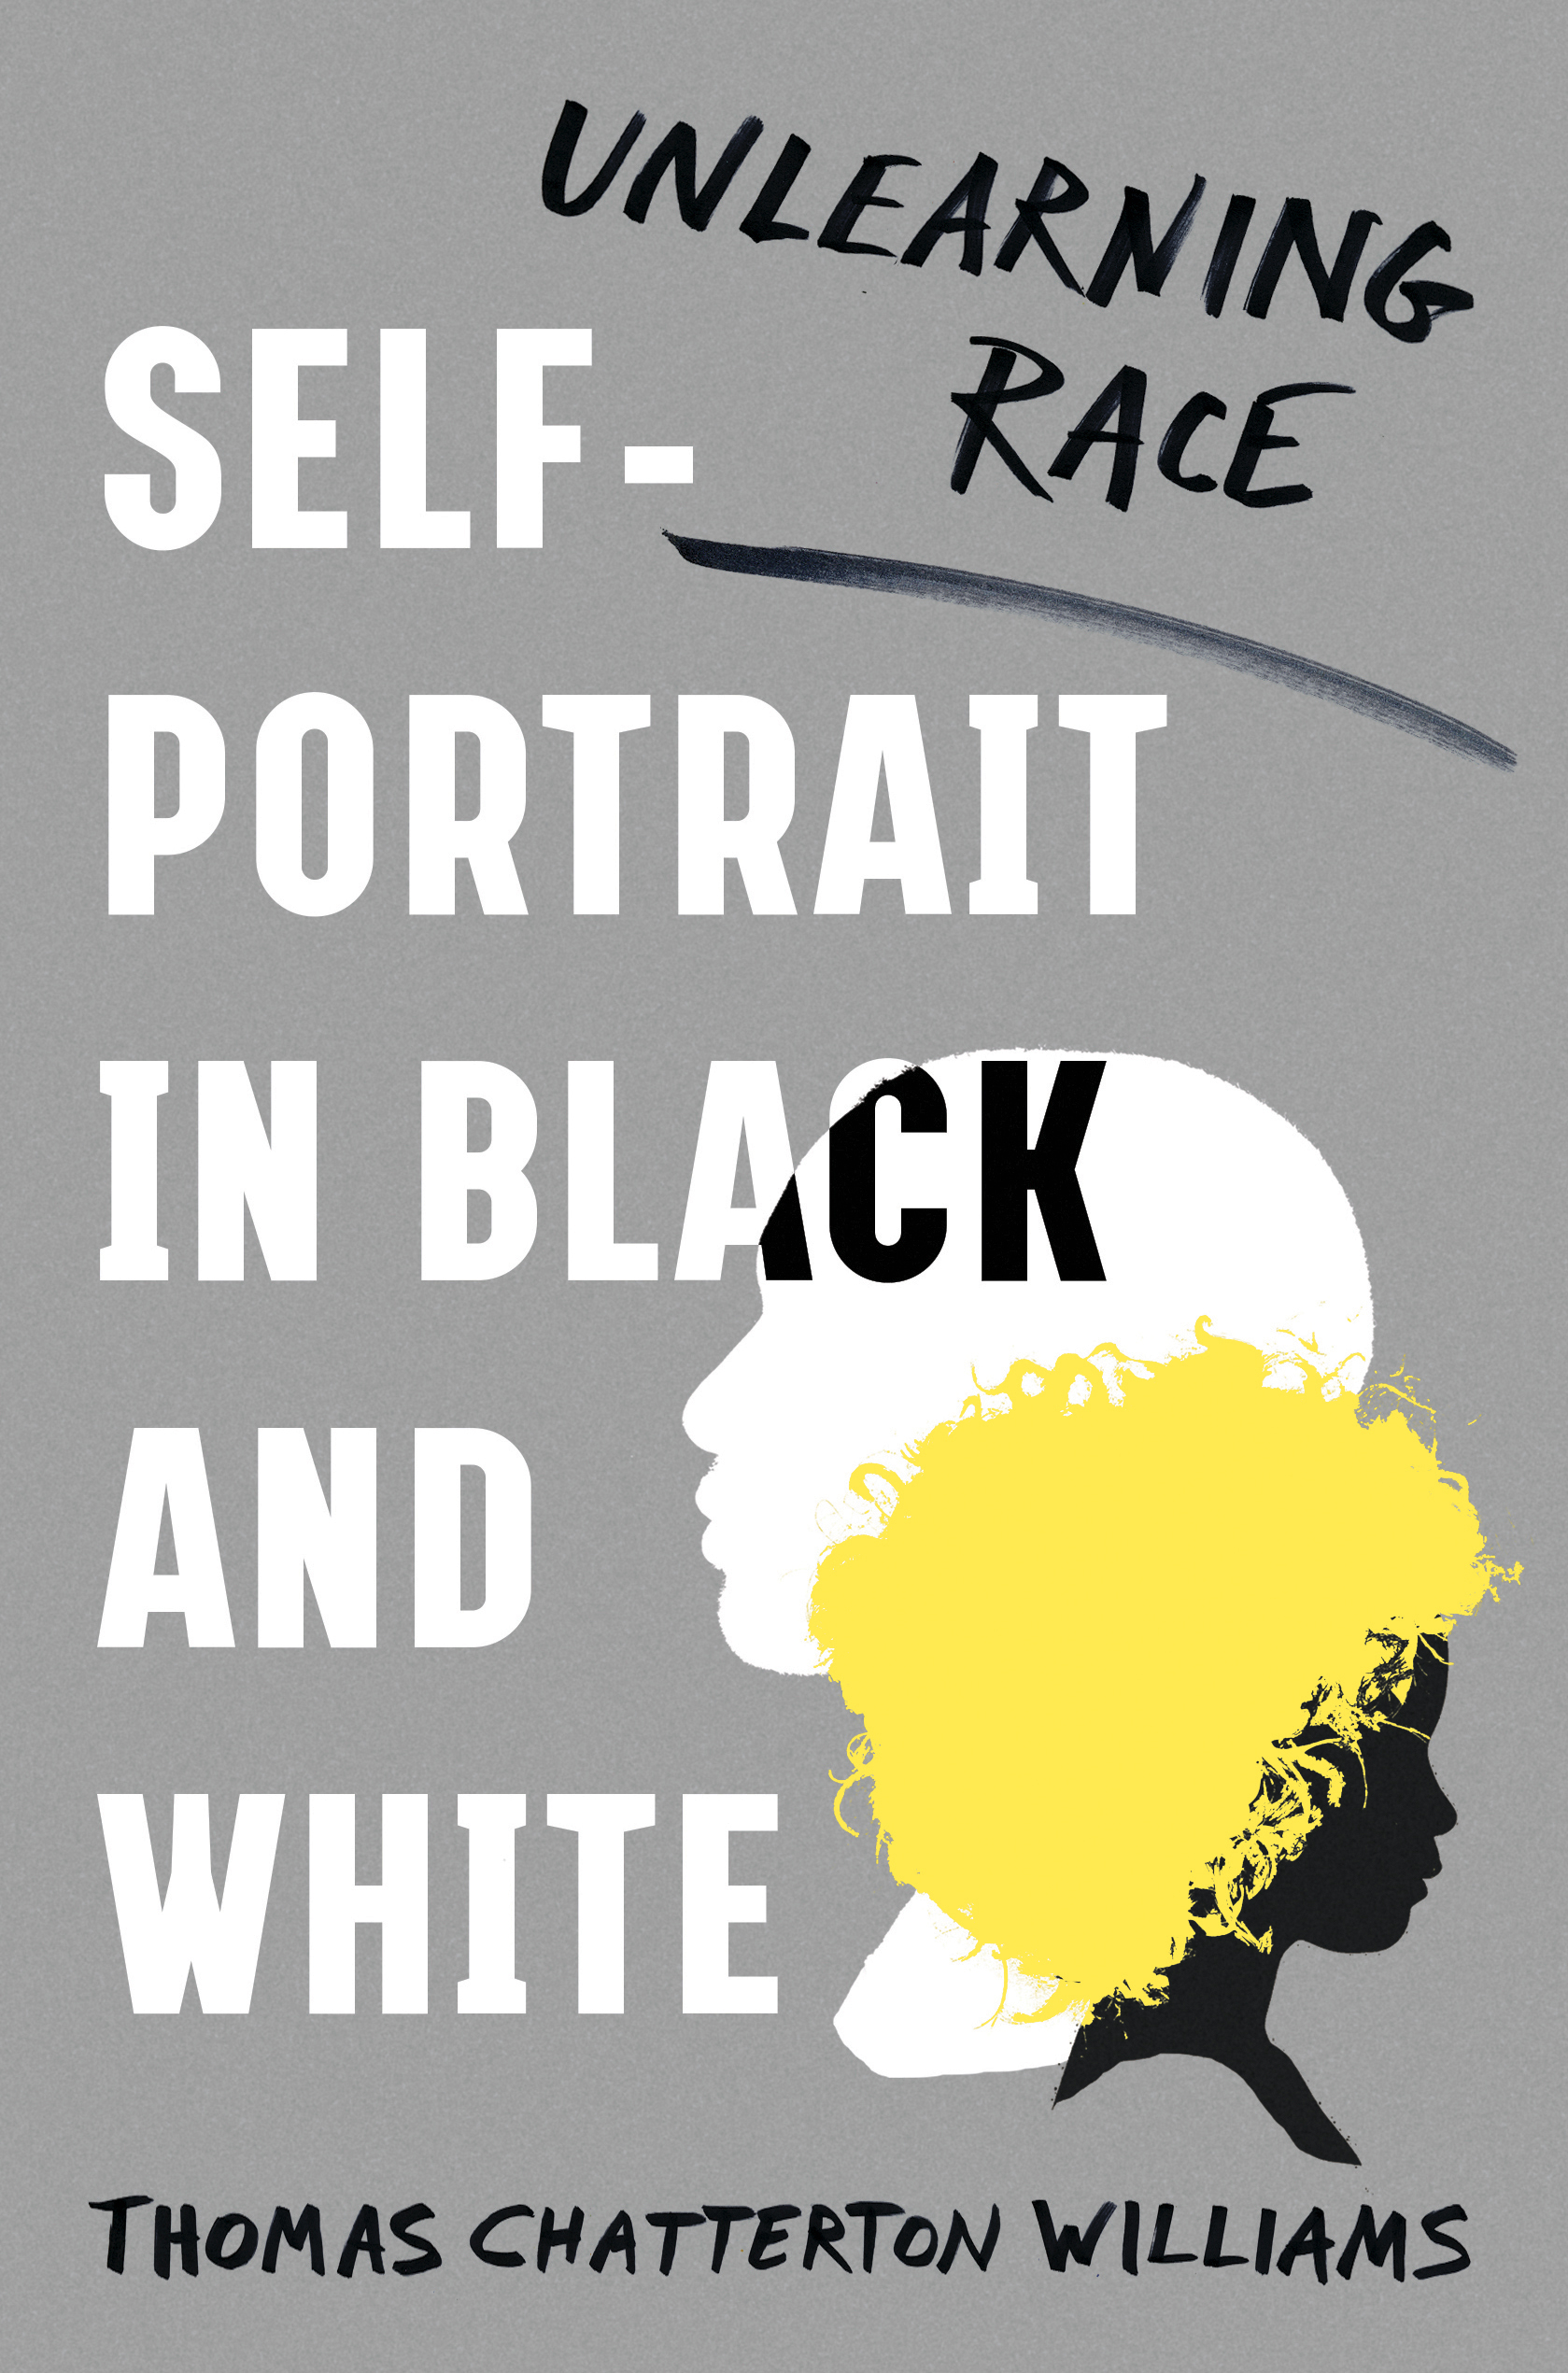 """""""A standout memoir that digs into vital contemporary questions of race and self-image....succeeds spectacularly for three main reasons: the author's relentlessly investigative thought process, consistent candor, and superb writing style. Almost every page contains at least one sentence so resonant that it bears rereading for its impact....An insightful, indispensable memoir."""" -   Kirkus  (starred review)   A reckoning with the way we choose to see and define ourselves,  Self-Portrait in Black and White  is the searching story of one American family's multigenerational transformation from what is called black to what is assumed to be white. Thomas Chatterton Williams, the son of a """"black"""" father from the segregated South and a """"white"""" mother from the West, spent his whole life believing the dictum that a single drop of """"black blood"""" makes a person black. This was so fundamental to his self-conception that he'd never rigorously reflected on its foundations—but the shock of his experience as the black father of two extremely white-looking children led him to question these long-held convictions.  """"It is not that I have come to believe that I am no longer black or that my daughter is white,"""" Williams writes. """"It is that these categories cannot adequately capture either of us."""" Beautifully written and bound to upset received opinions on race,  Self-Portrait in Black and White  is an urgent work for our time."""